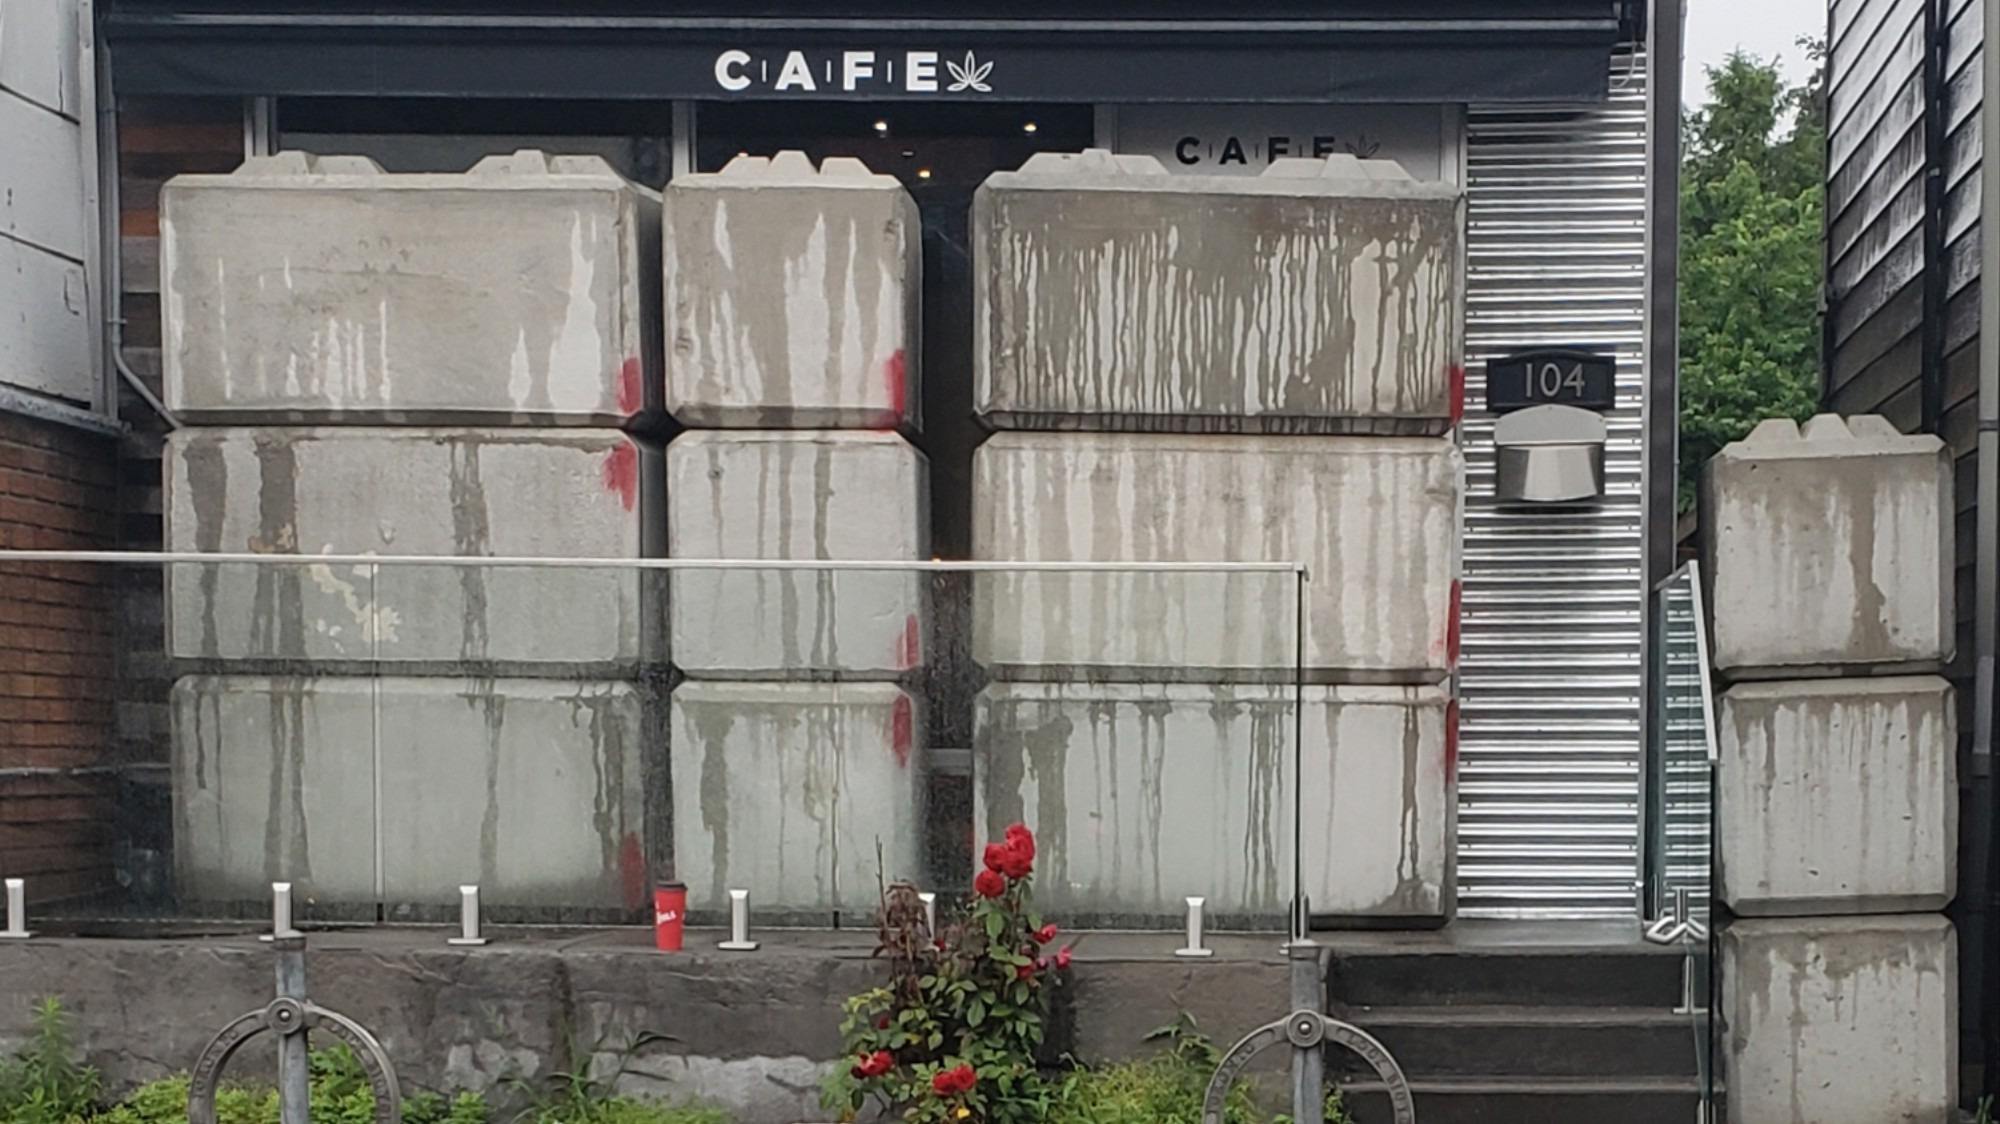 A Man Got Trapped Inside a Concrete-Entombed Weed Shop in